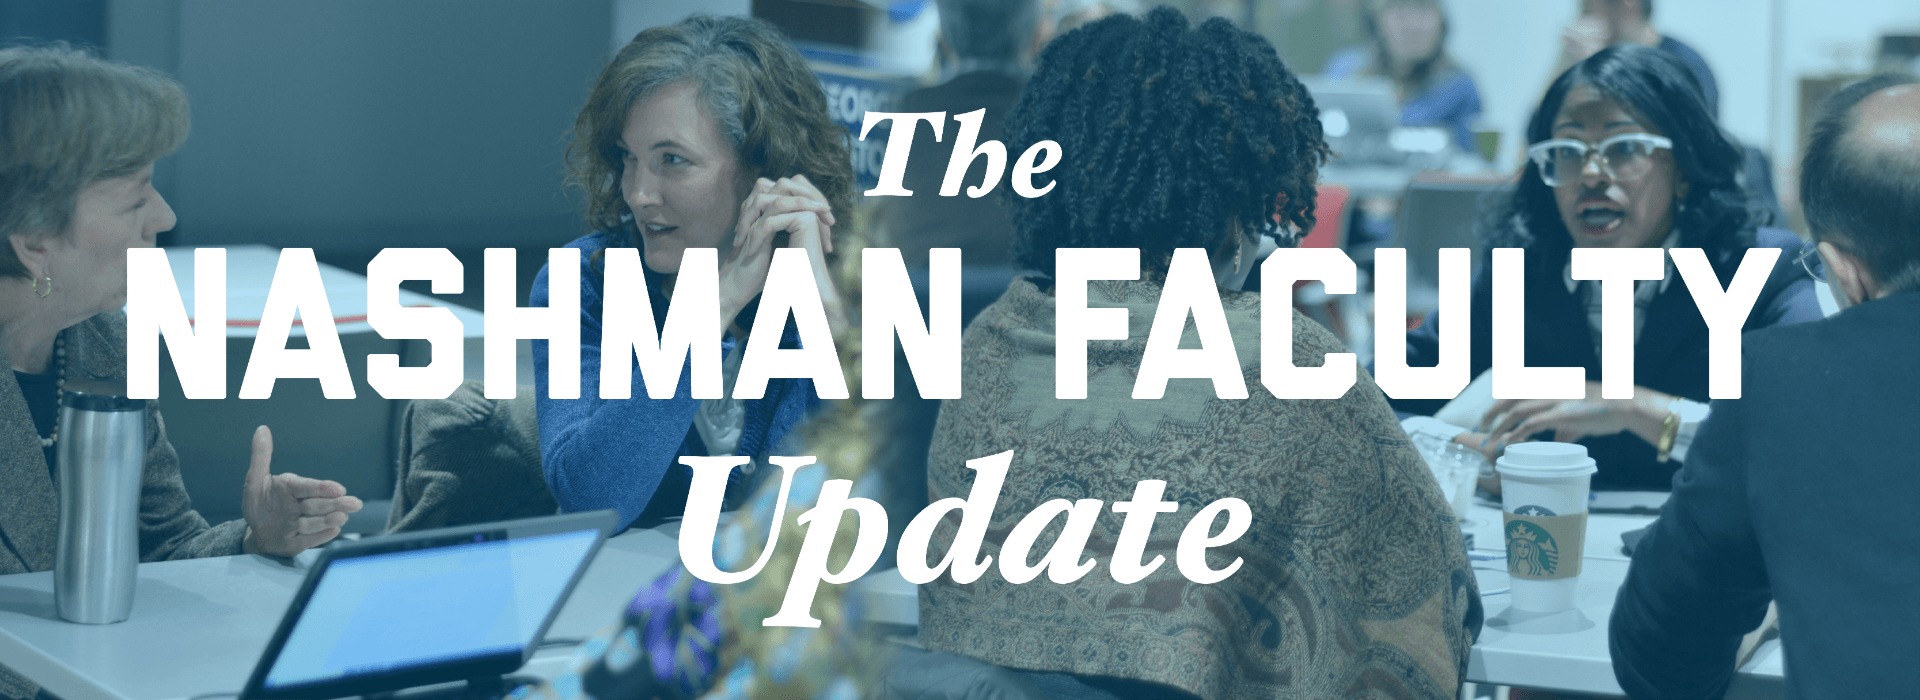 The Nashman Faculty Update